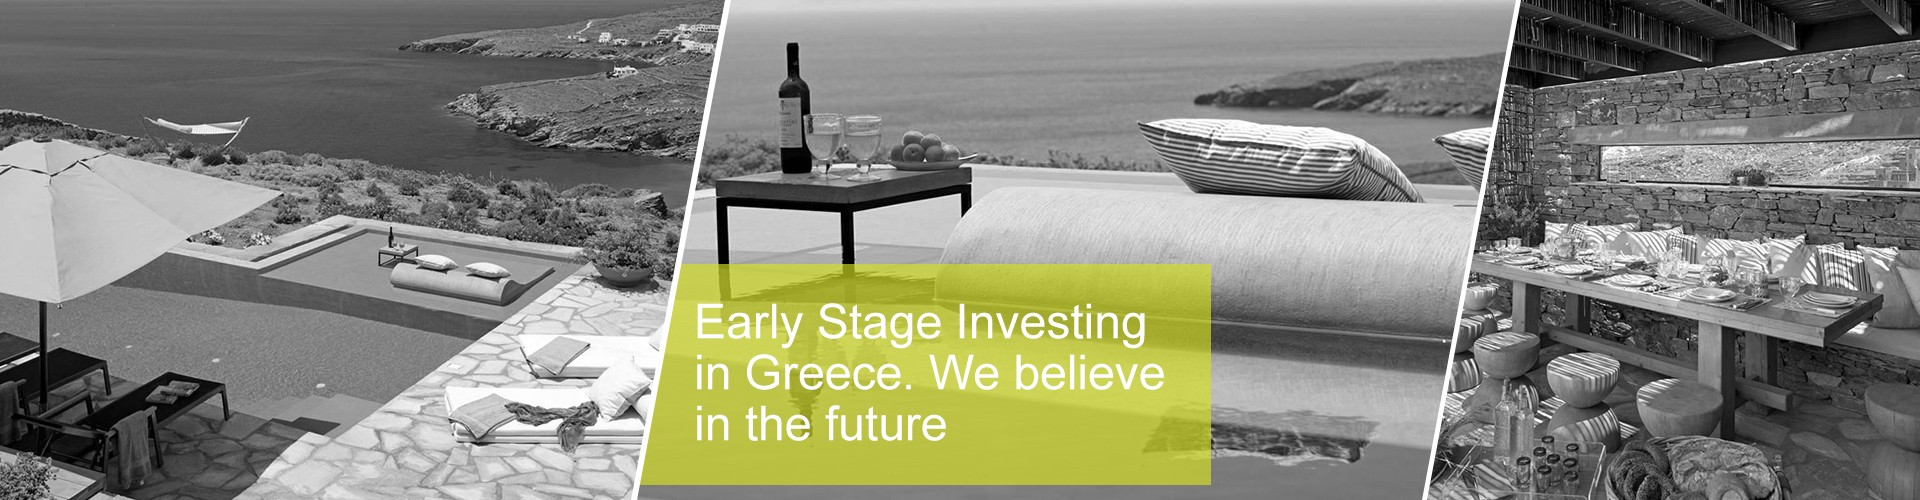 We offer Knowledge, Experience and Partnership. We design, build and manage your property in Greece